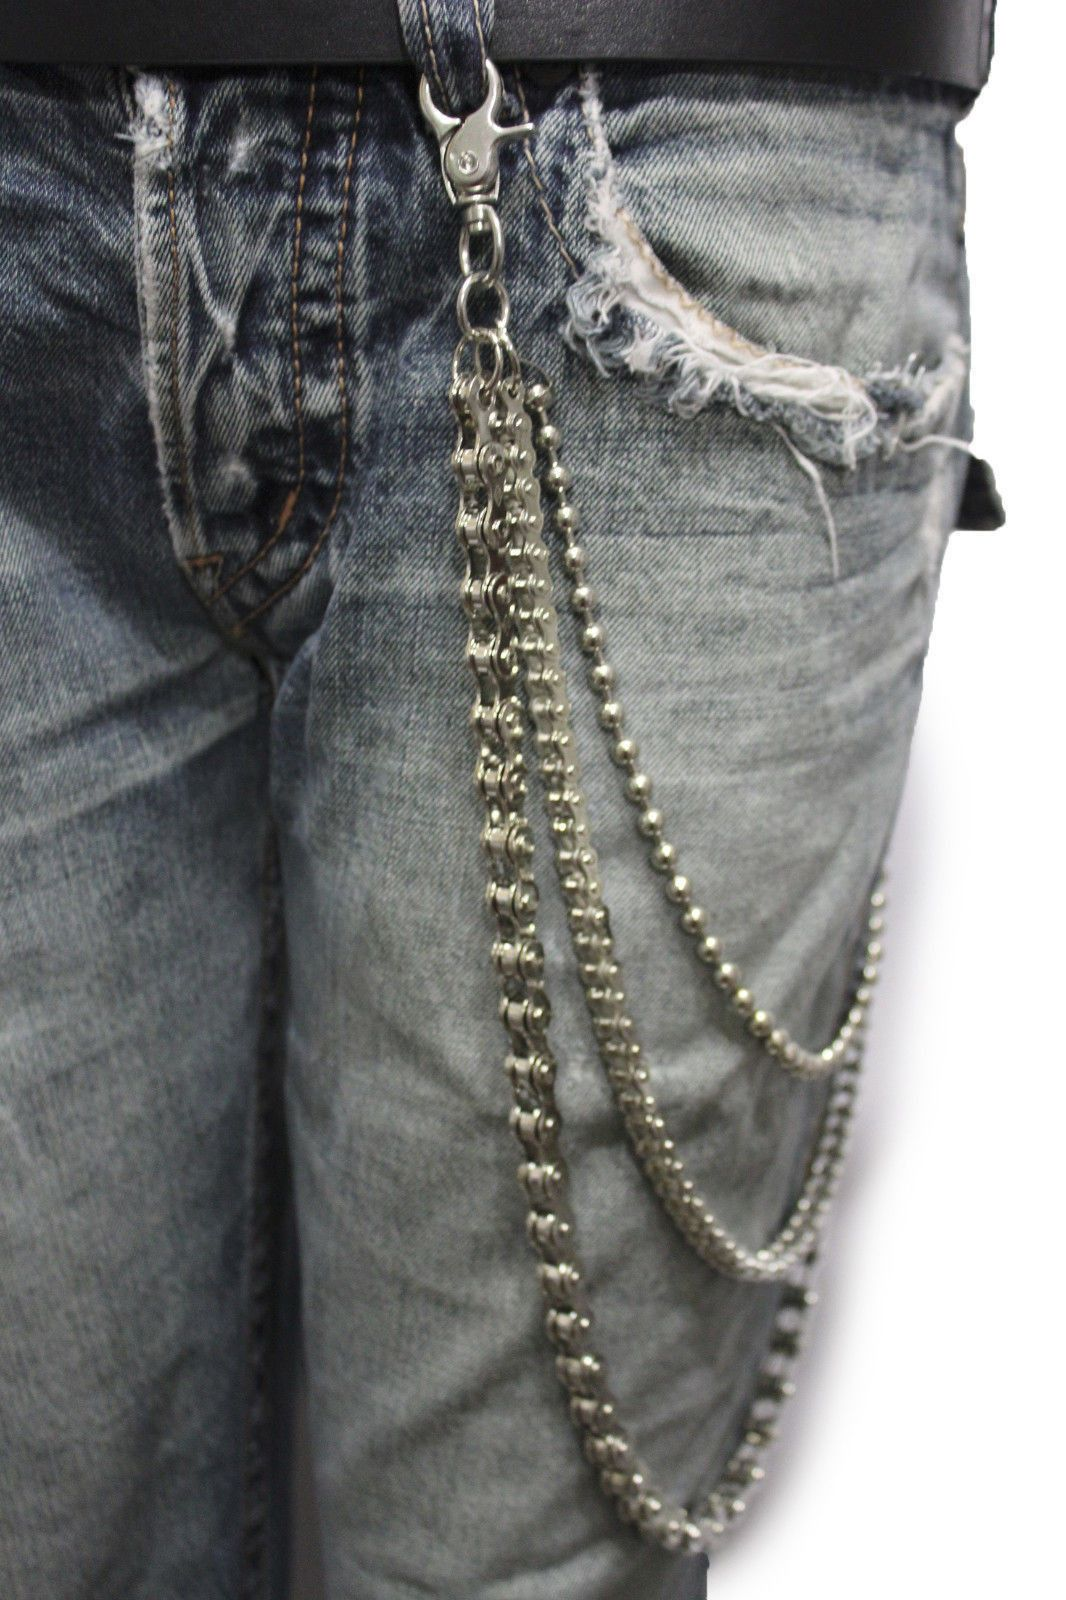 d737f91cf0de Silver Metal Wallet Chains Links KeyChain Jeans Biker 3 Strands Biker  Motorcycle Rocker New Men Fashion Accessories